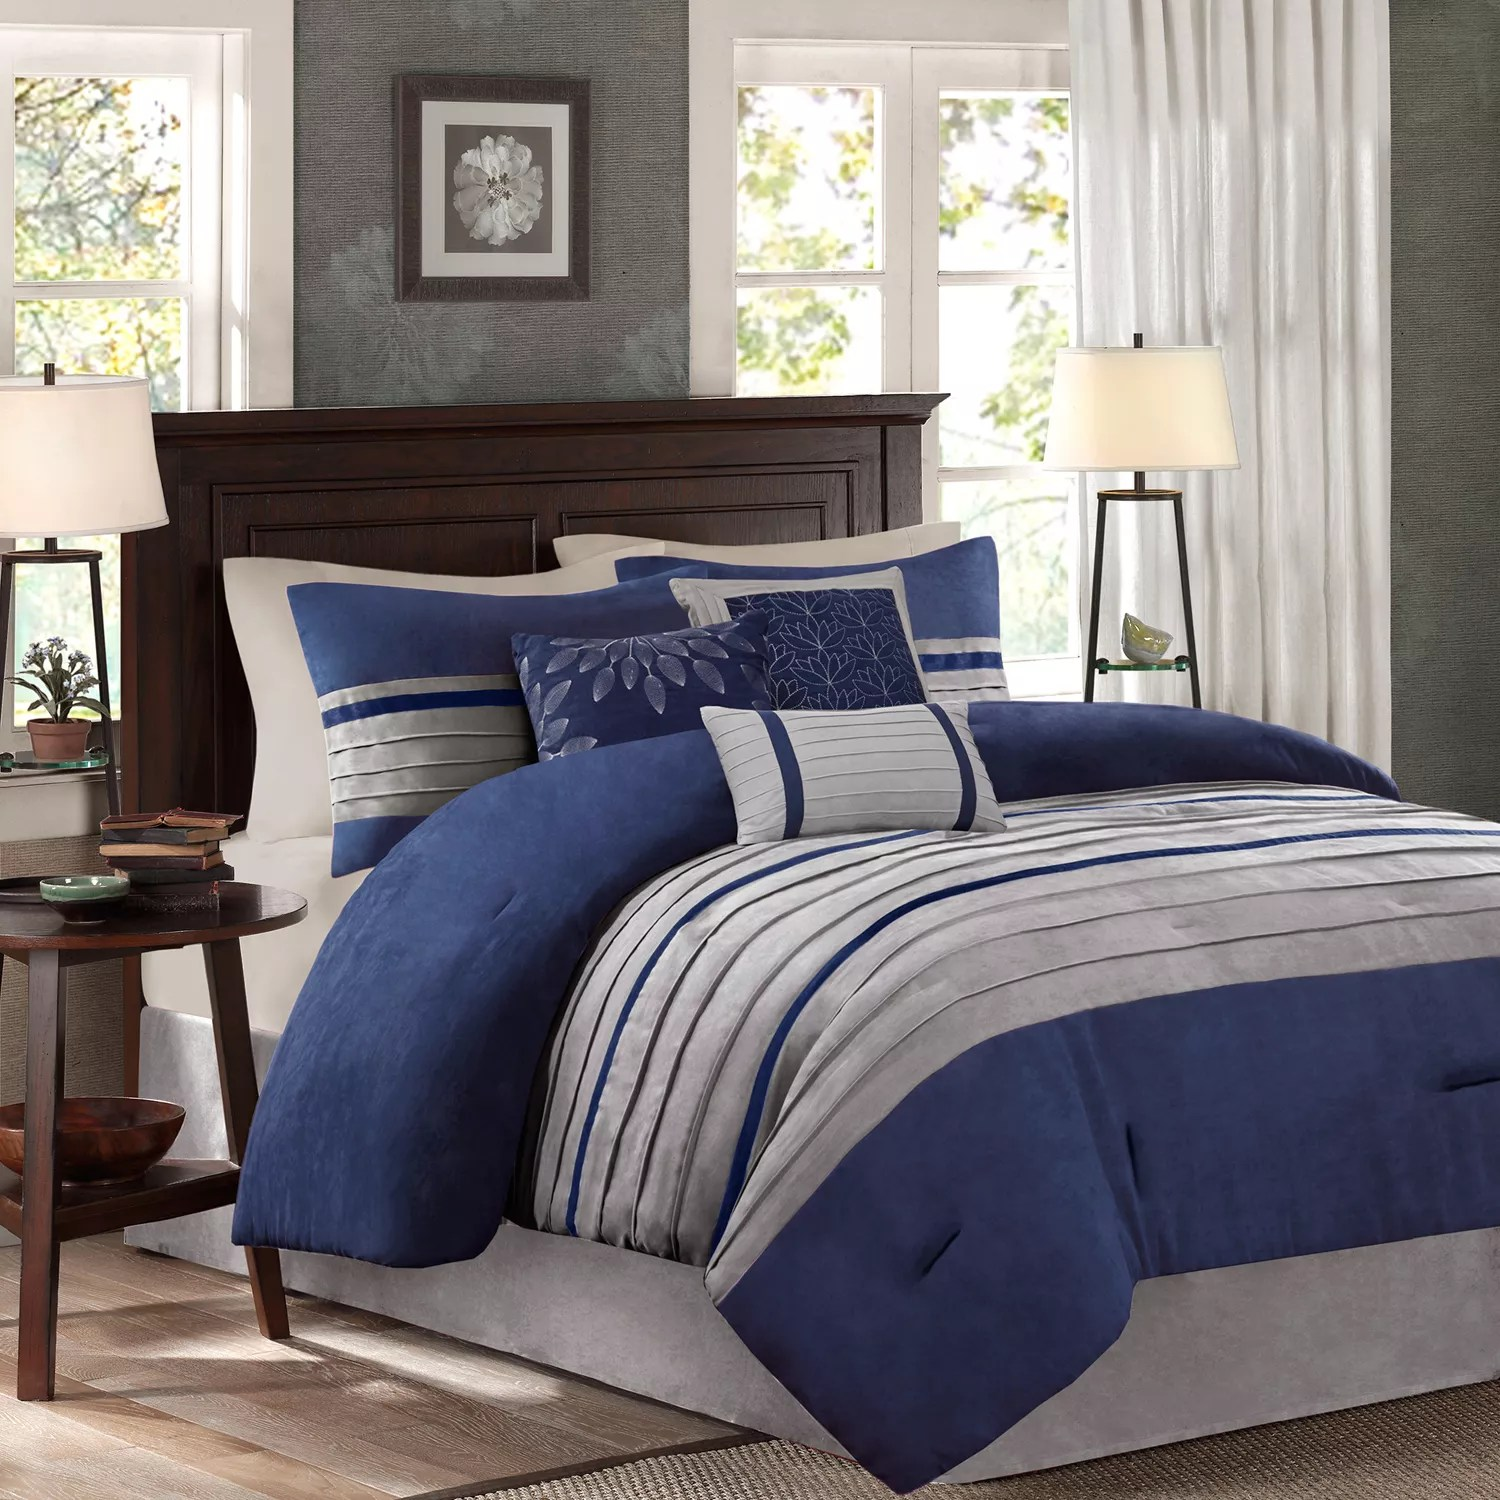 king blue comforters bedding bed